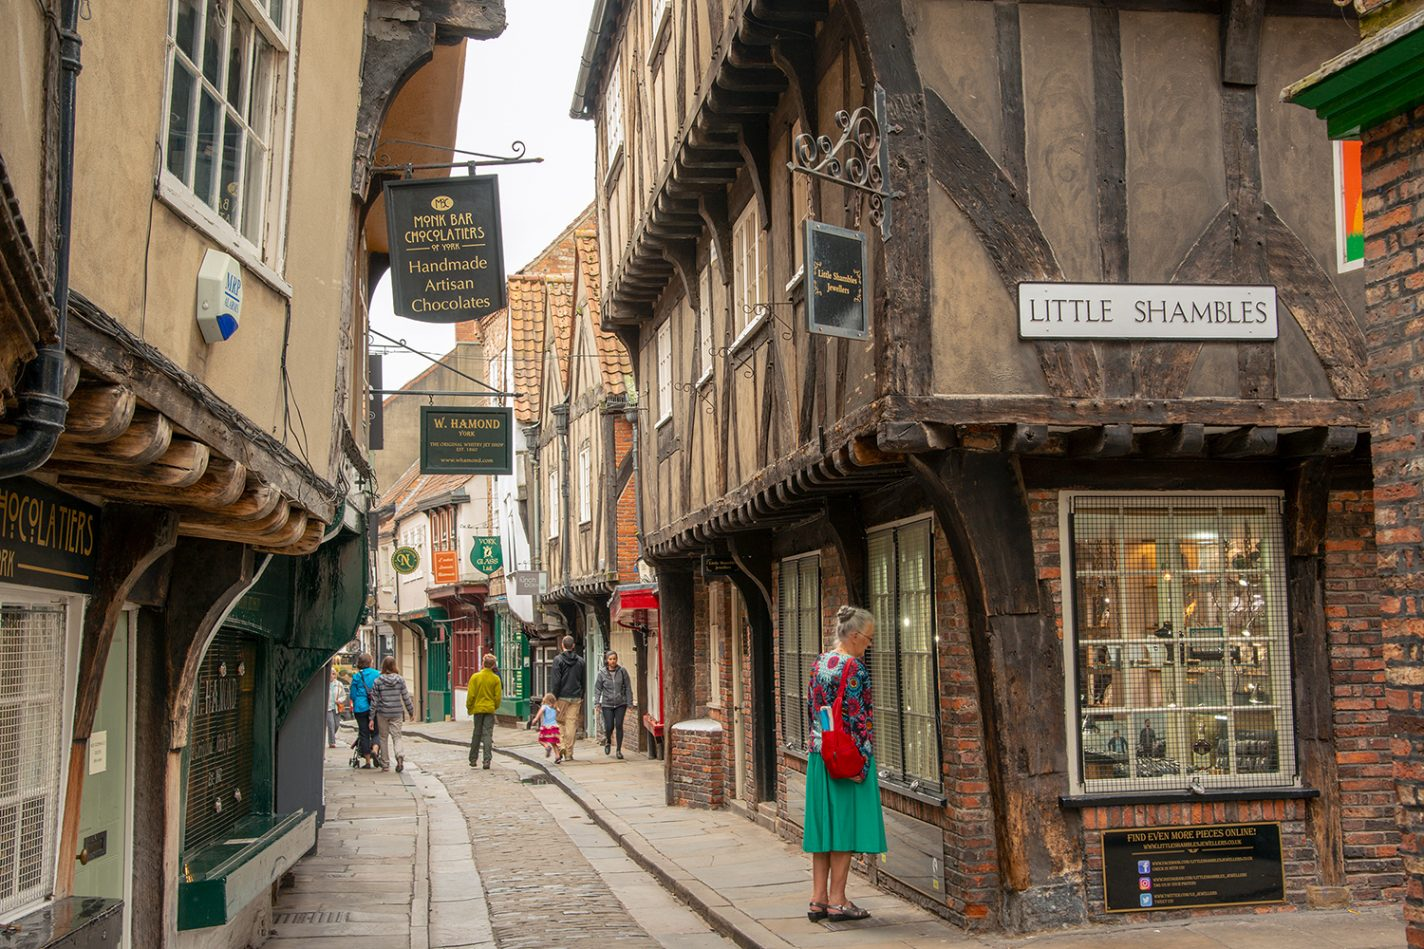 The Shambles in het Engelse York